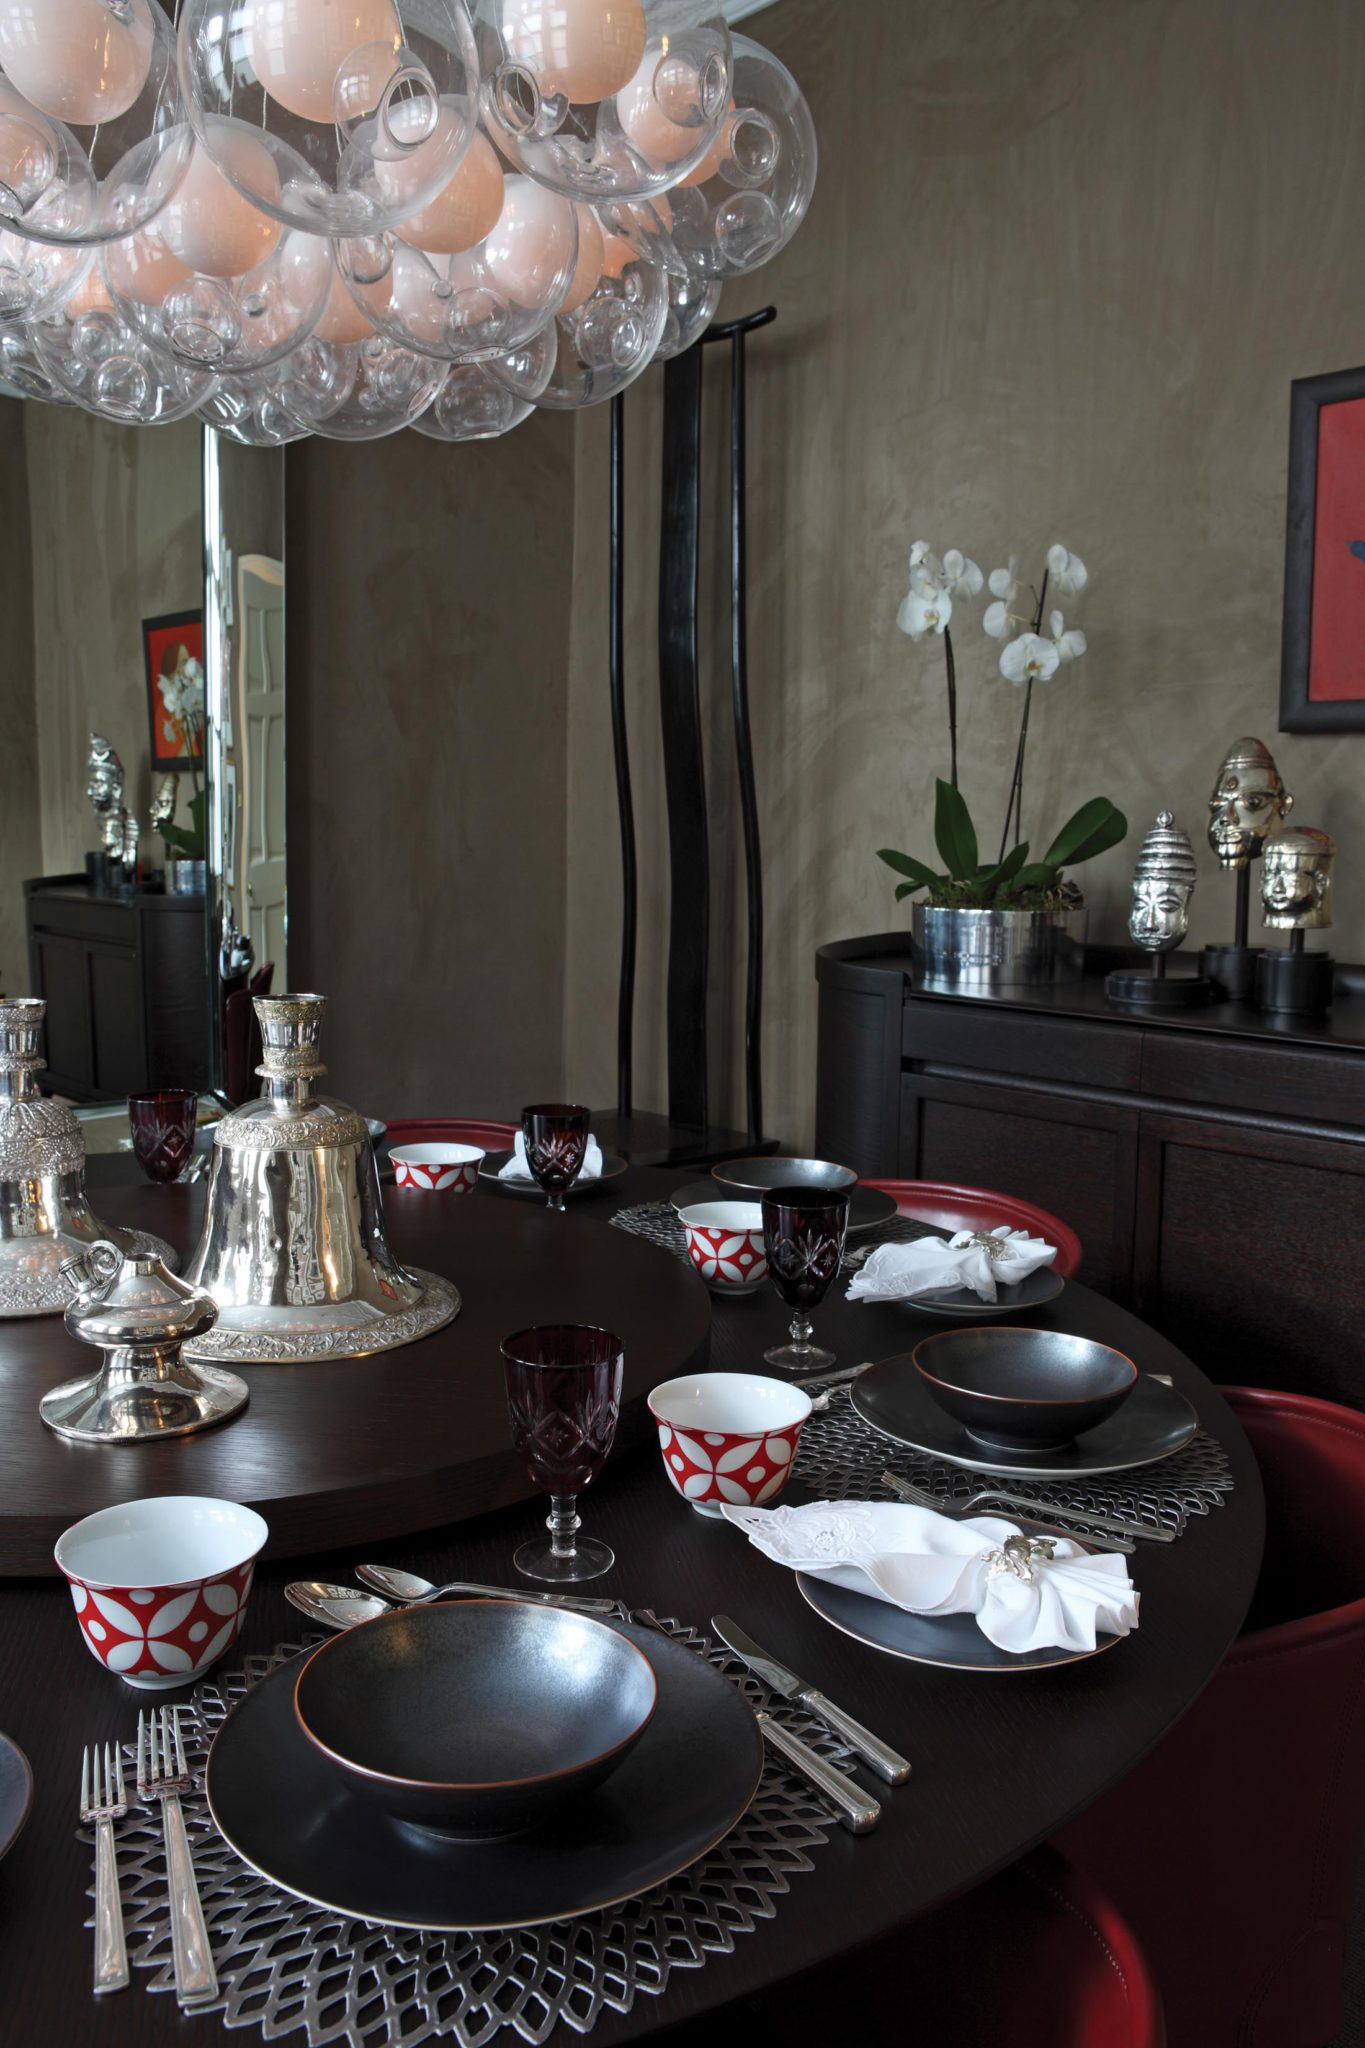 Knightsbridge Dining Room with contemporary chandelier by Staffan Tollgard